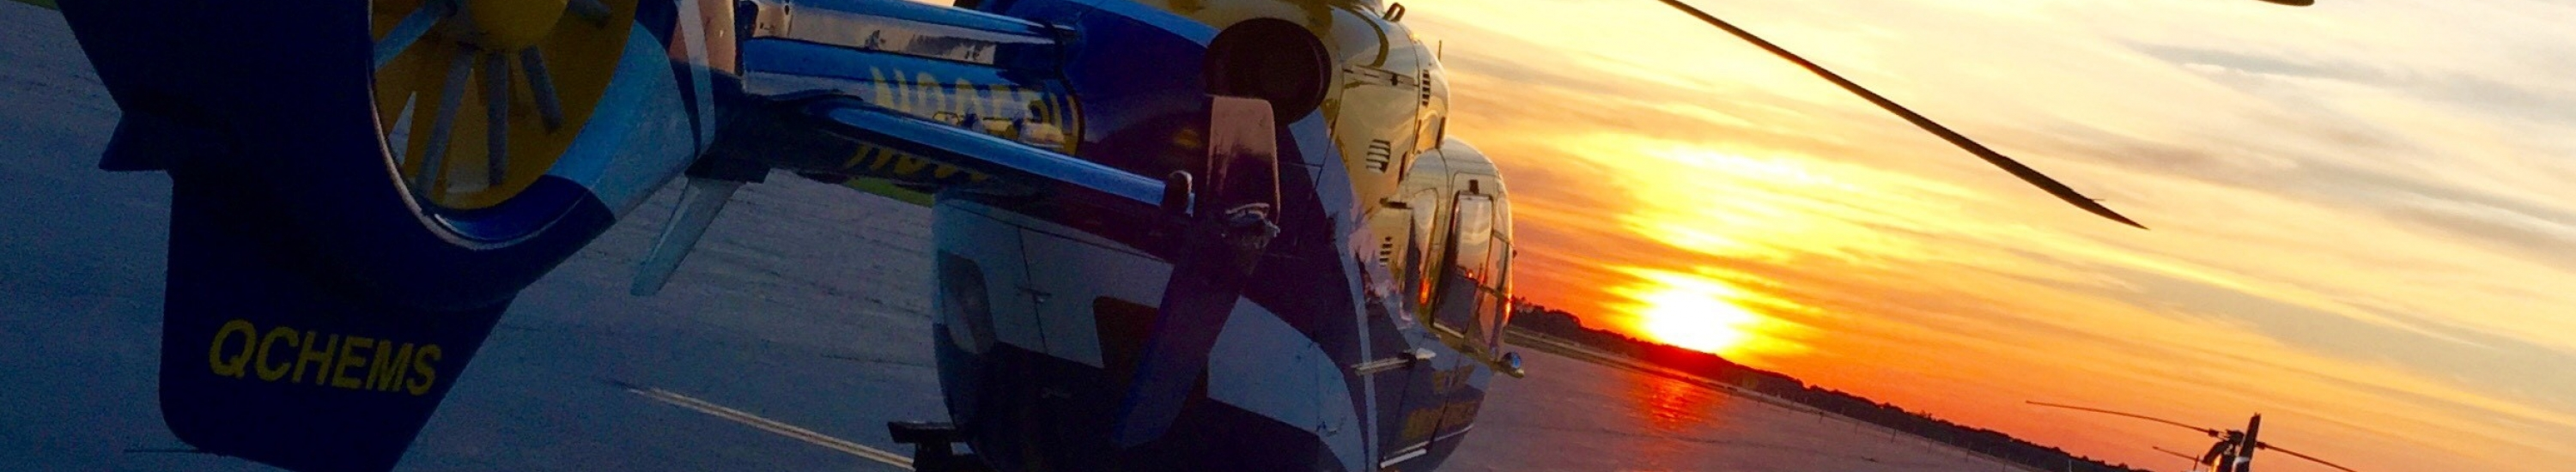 medforce aircraft in the sunset